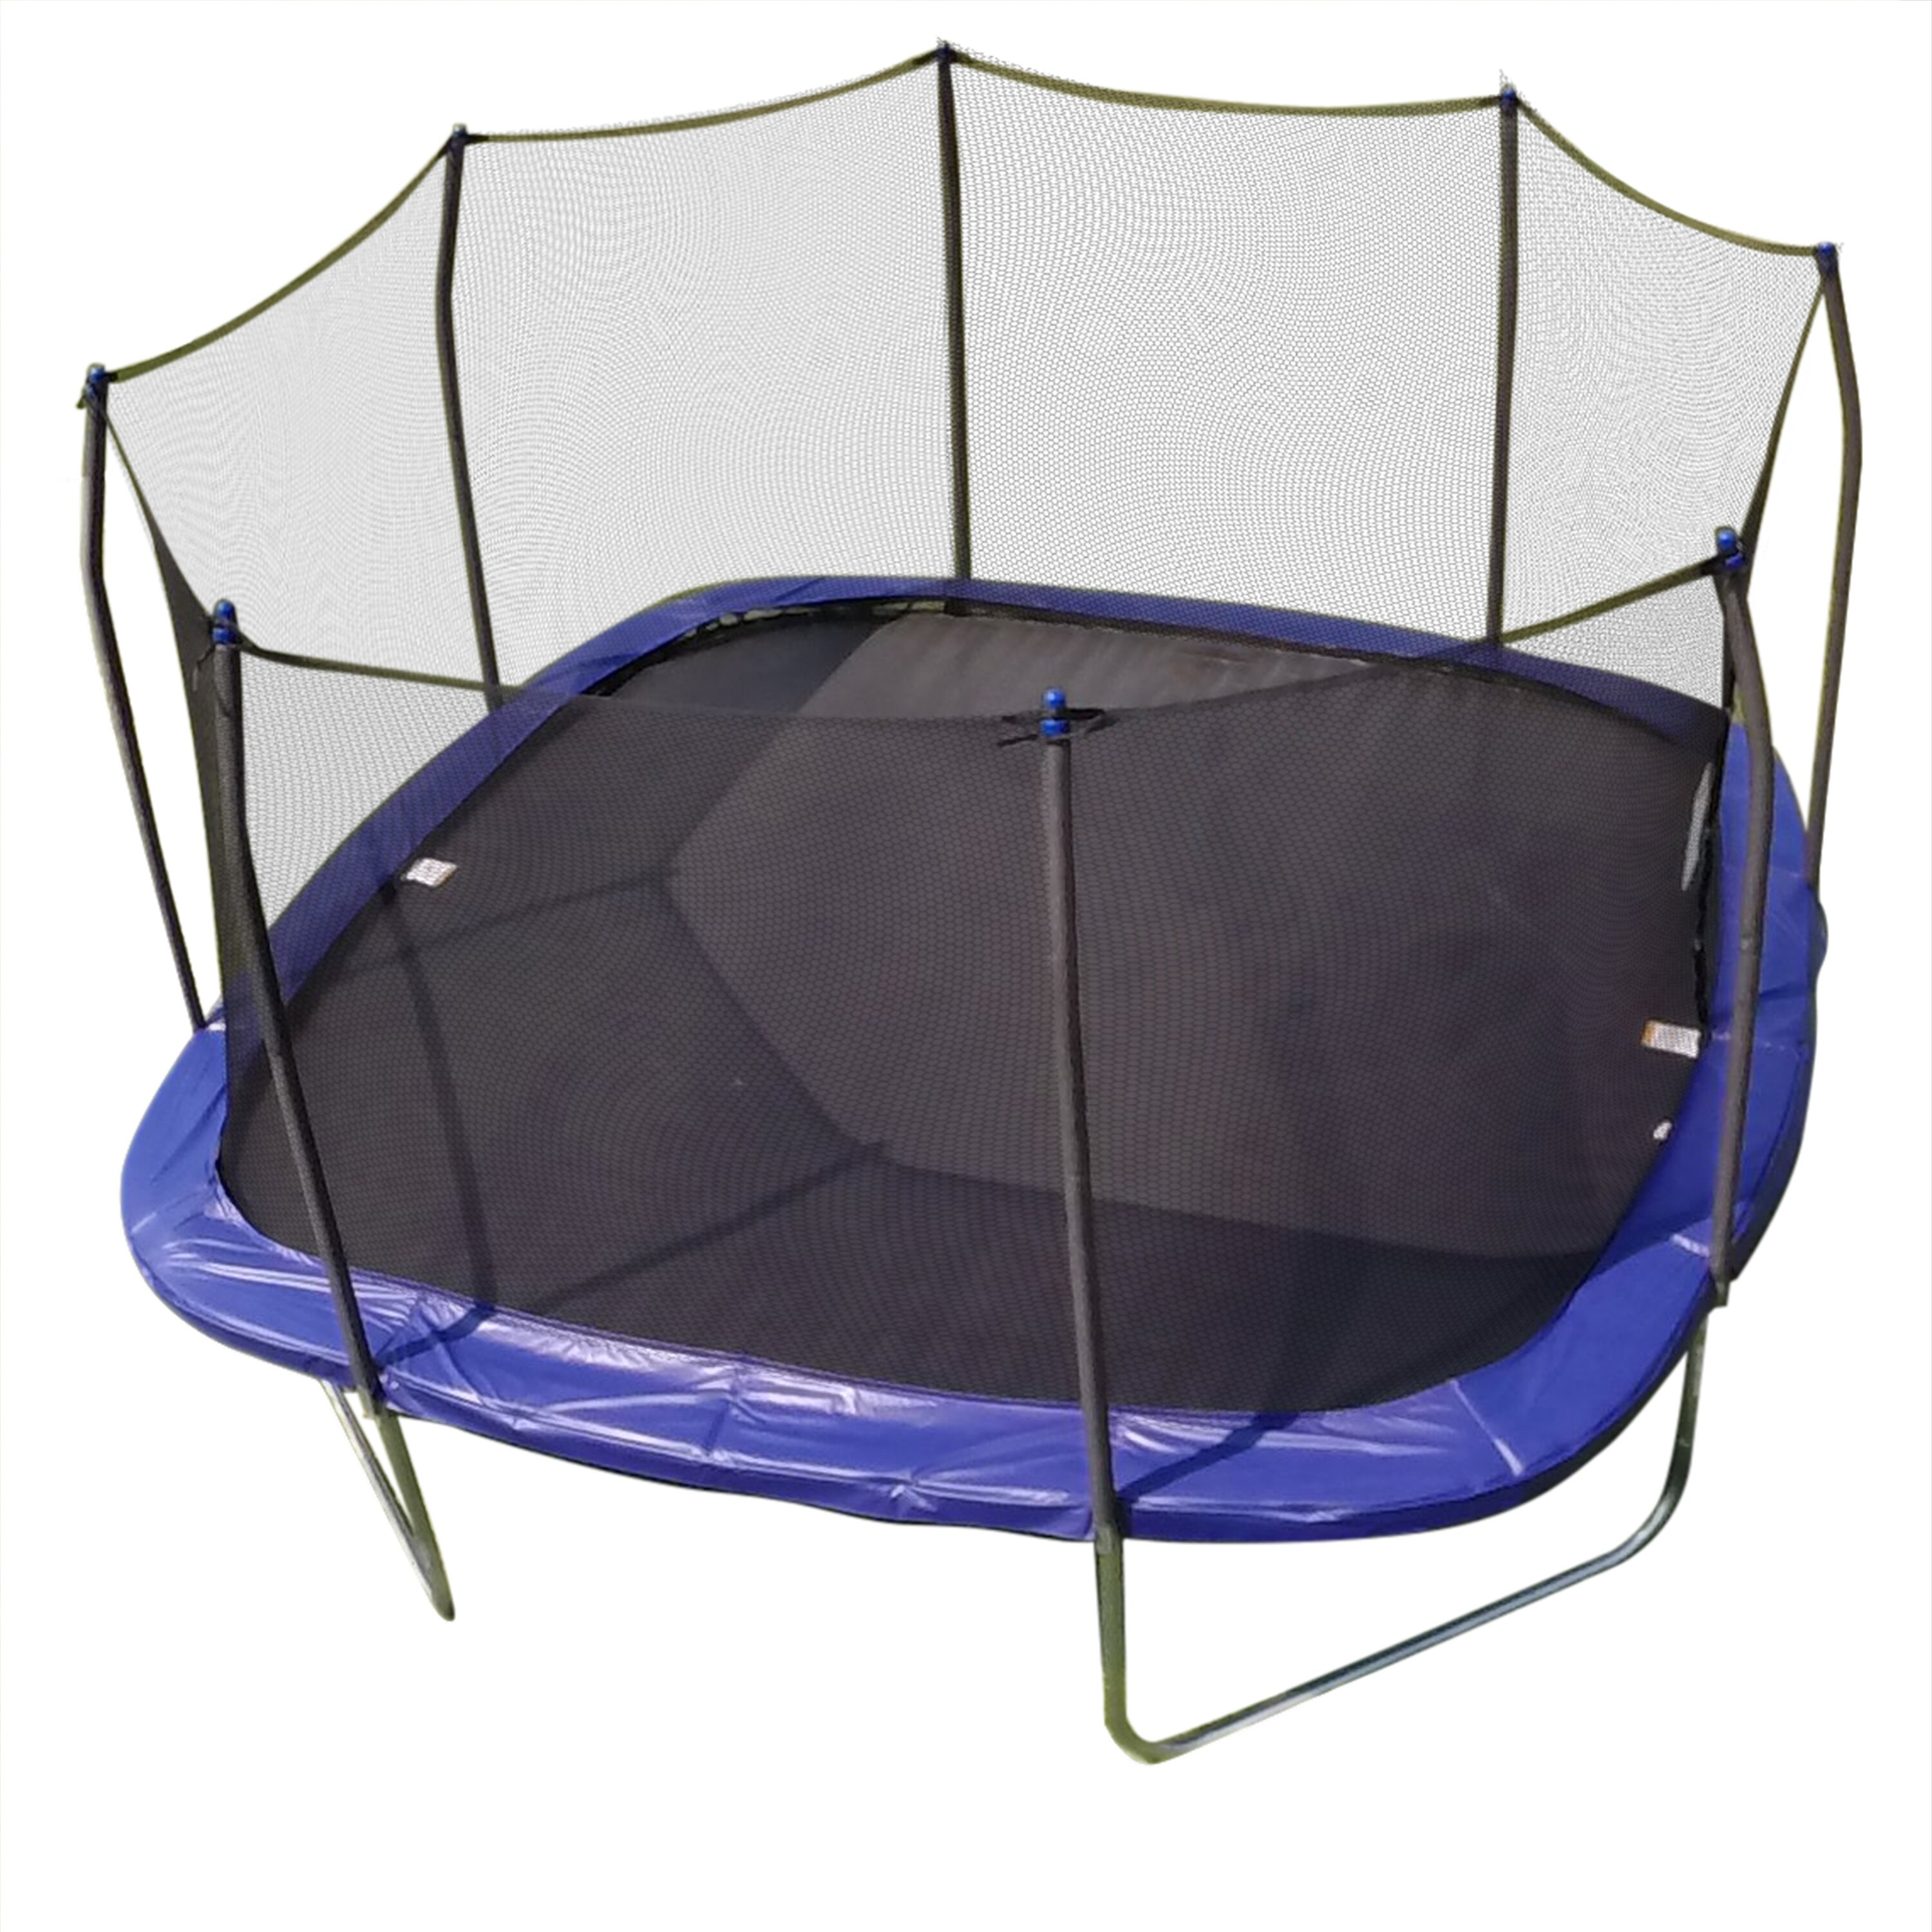 mini trampoline with enclosure skywalker 14 square trampoline and enclosure amp reviews 7517